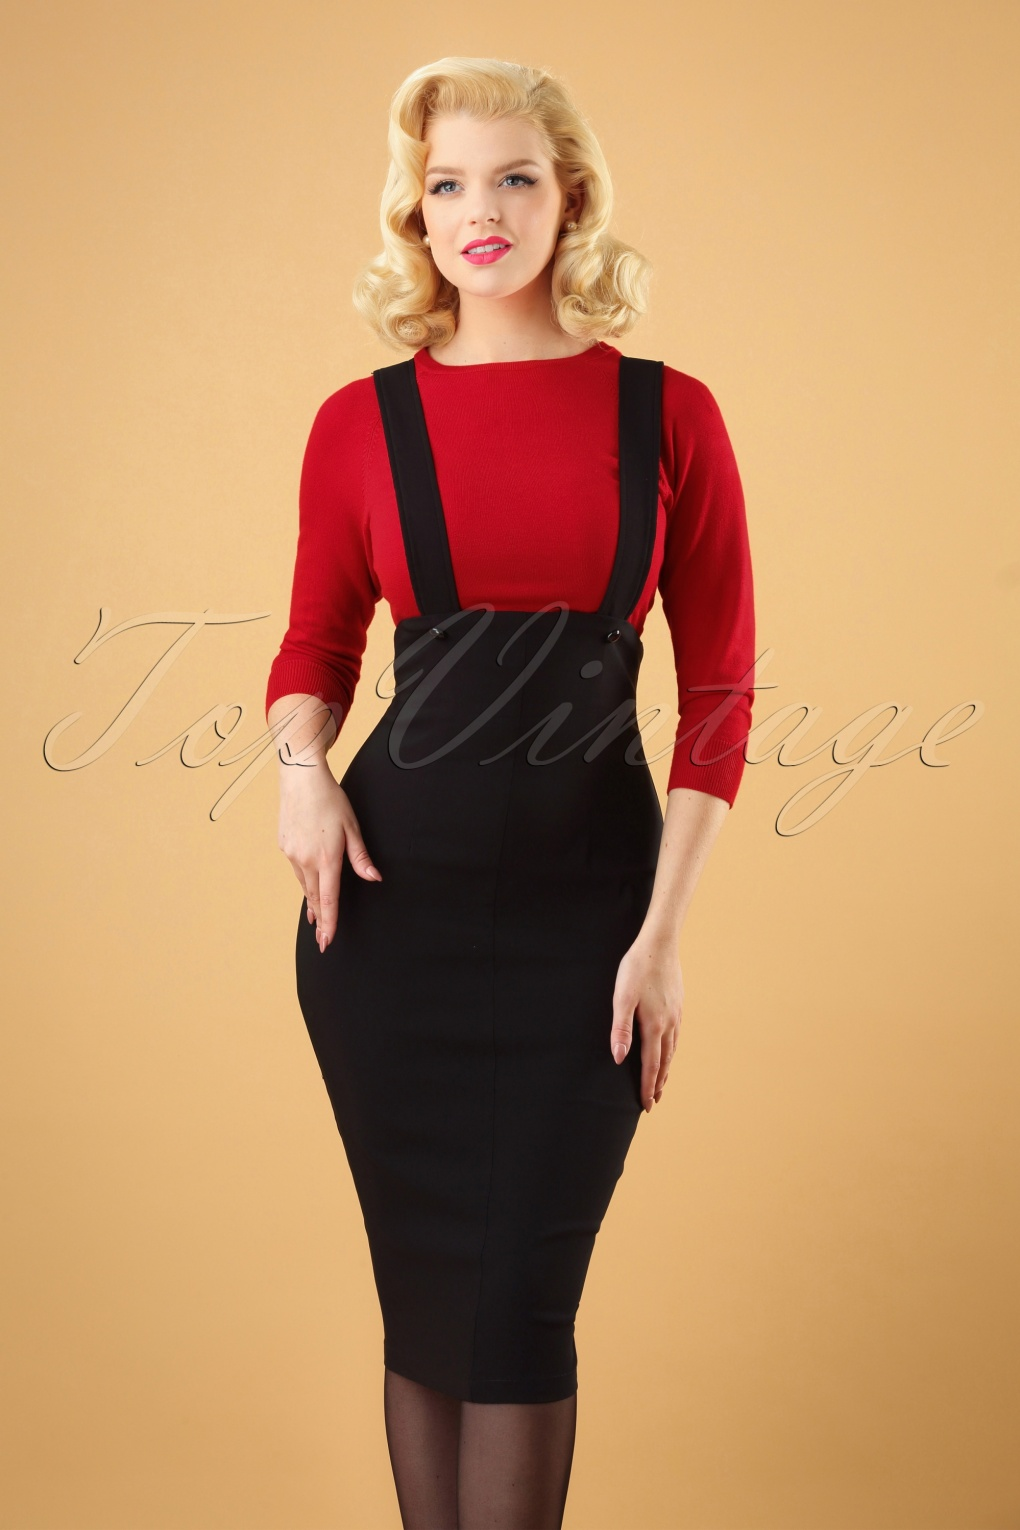 50s Skirt Styles | Poodle Skirts, Circle Skirts, Pencil Skirts 50s Jumper Pencil Skirt in Black £78.45 AT vintagedancer.com